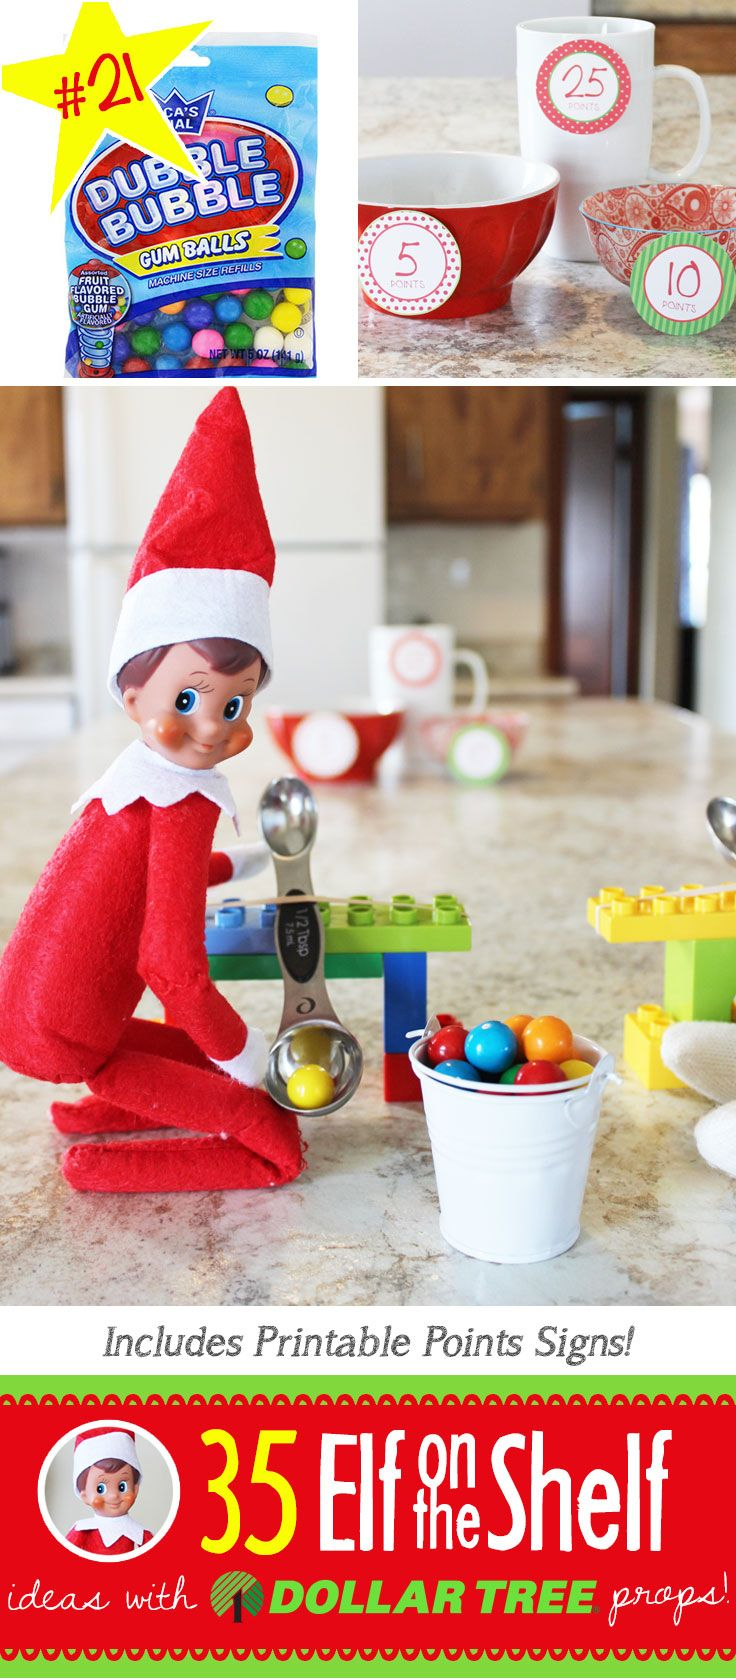 35 BRAND NEW Elf on the Shelf ideas for 2017! These fun, creative & EASY Elf on the Shelf ideas all include an item from the Dollar Tree!